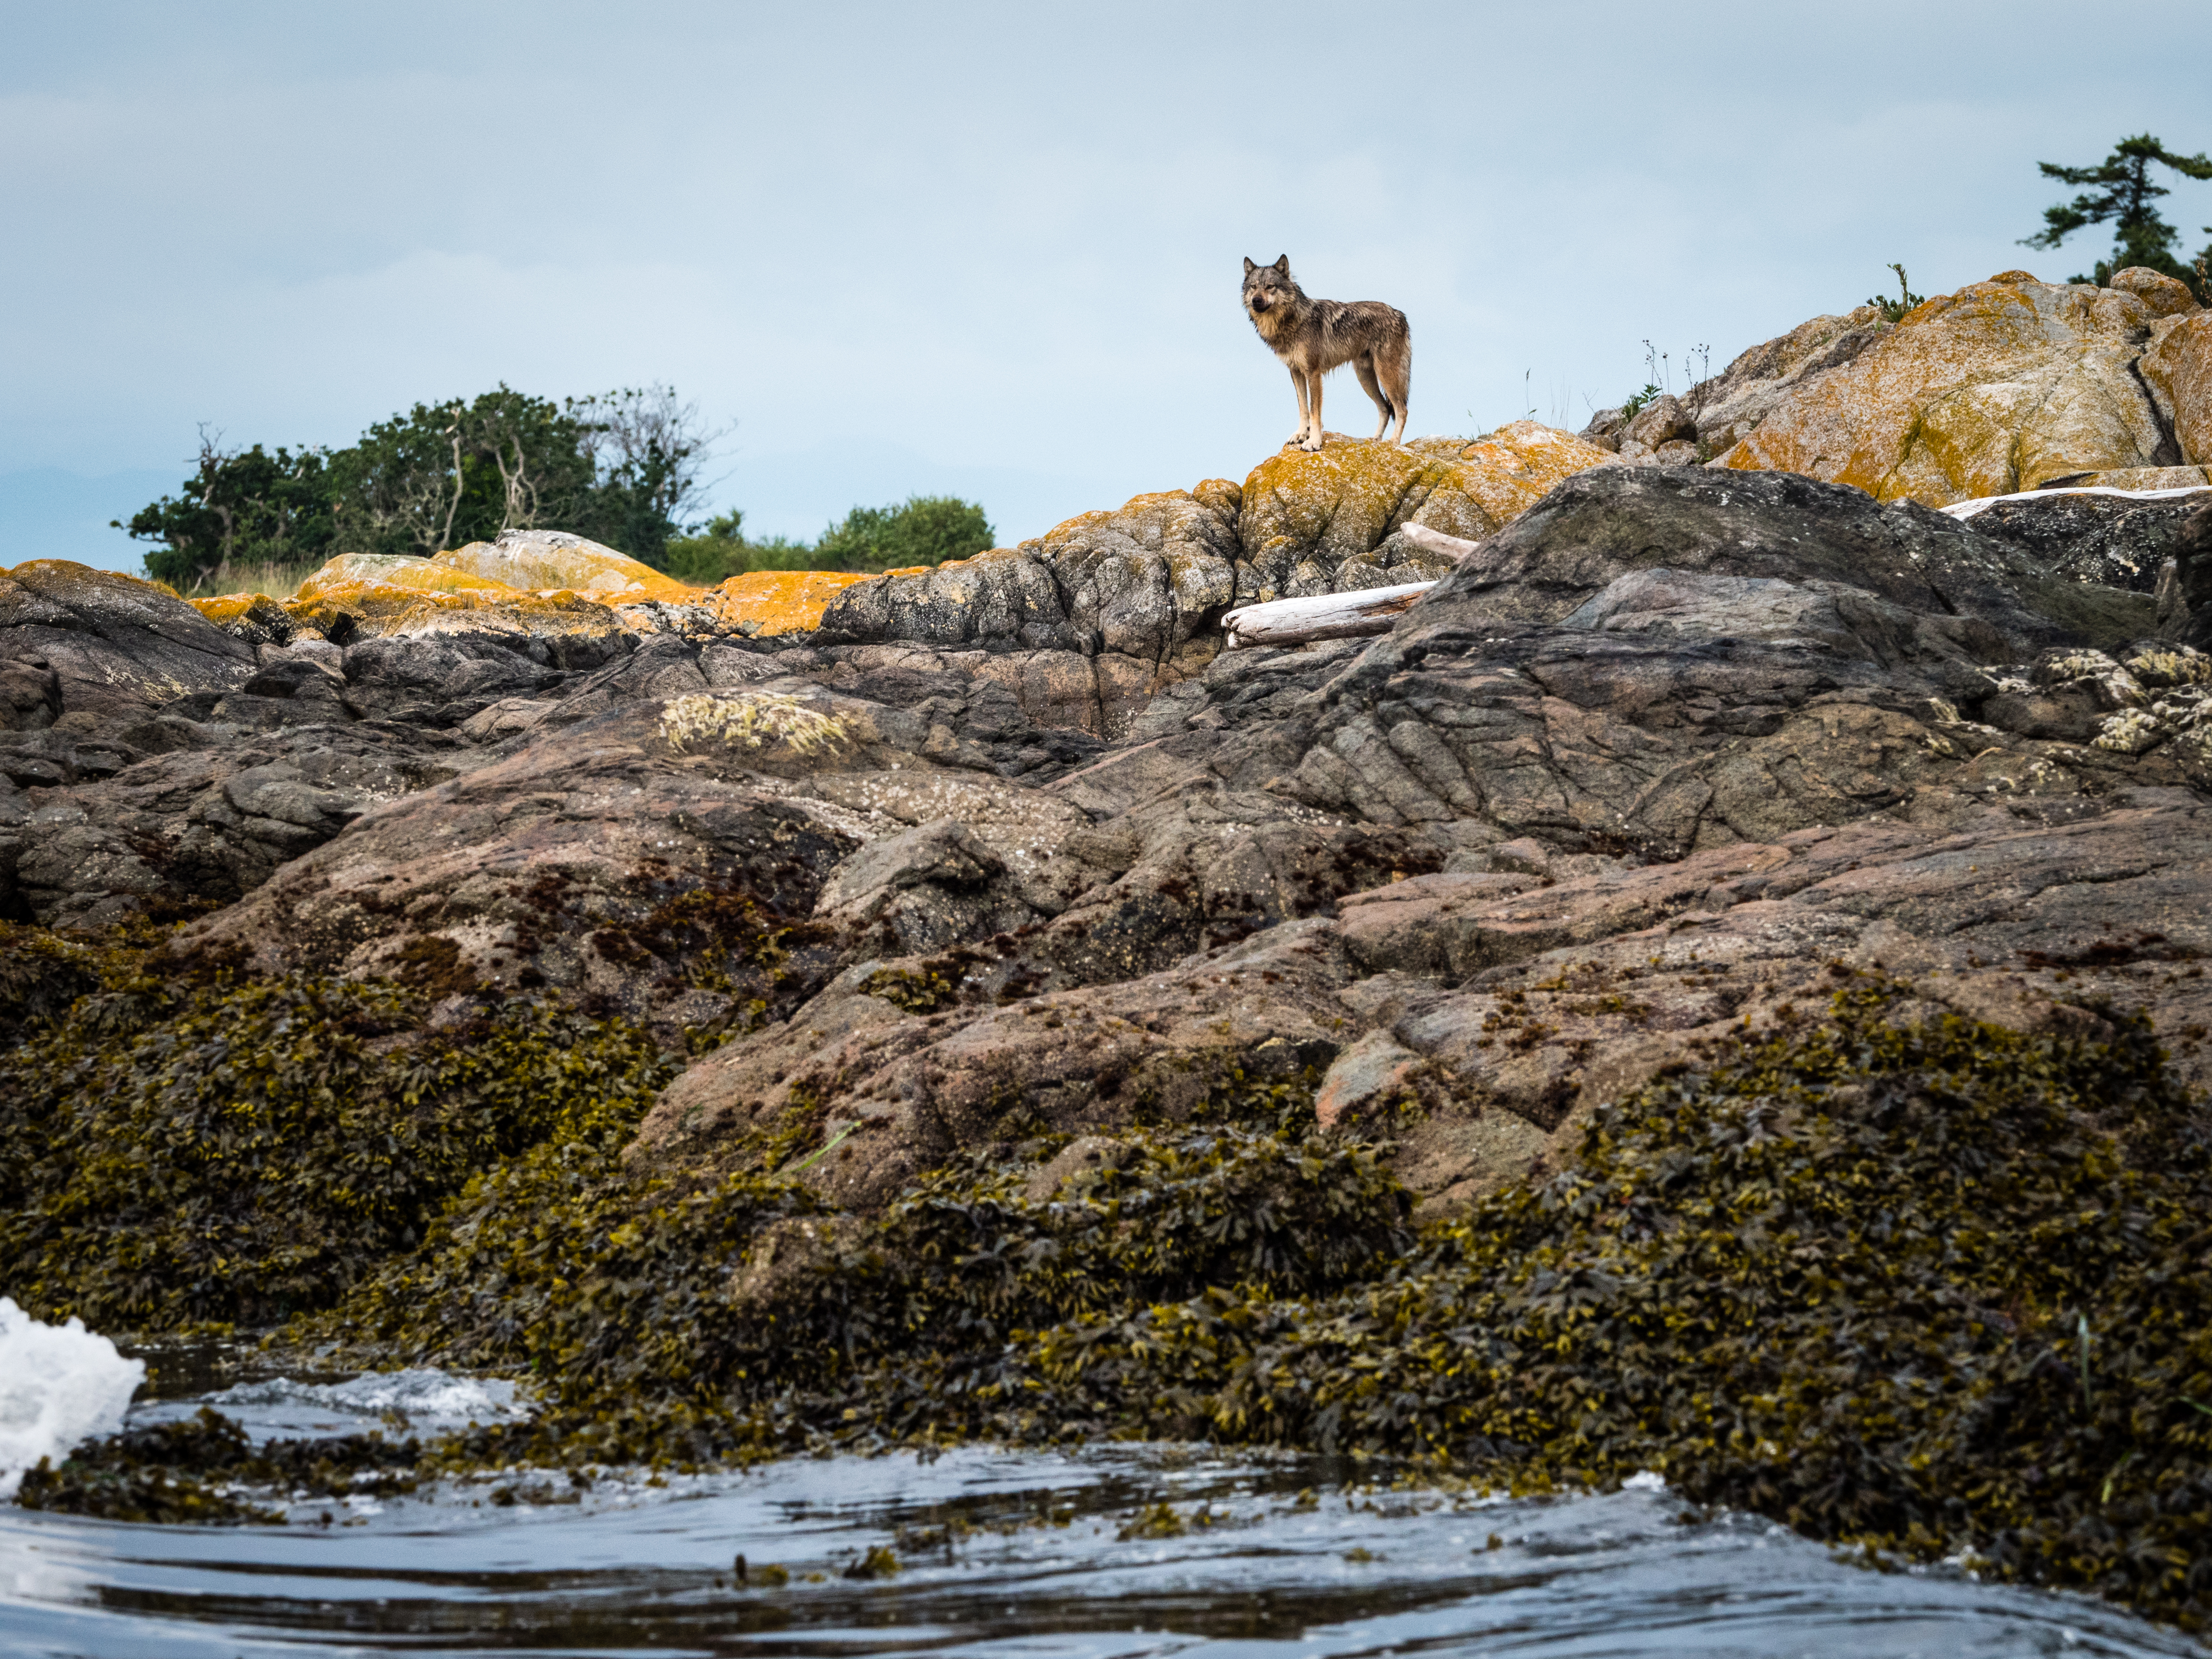 A wolf stands on the rocky shore, overlooking the sea